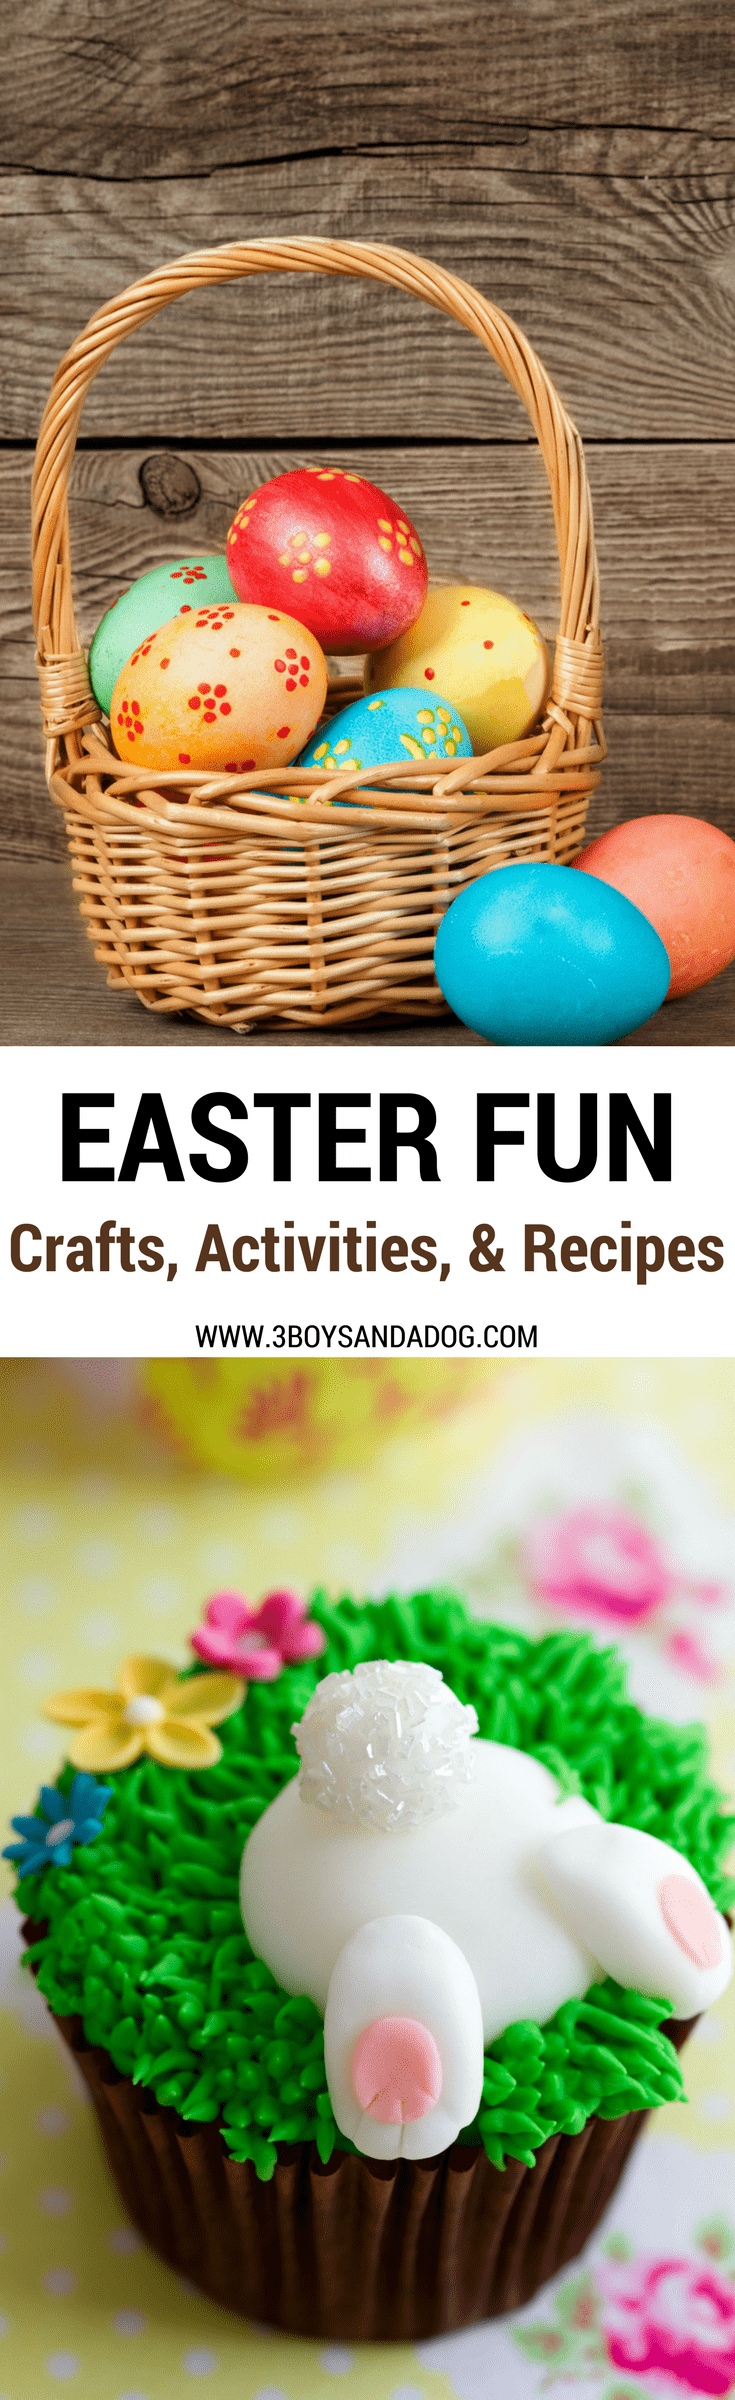 This huge list of over 60 Easter Recipes, Crafts & Educational Ideas can help you instill the real reason for the season and into your Children.  Includes Religious Easter Crafts, Recipes, and Activities as well as cutesy Bunny & Eggs Easter Crafts, Recipes, and Activities for kids!